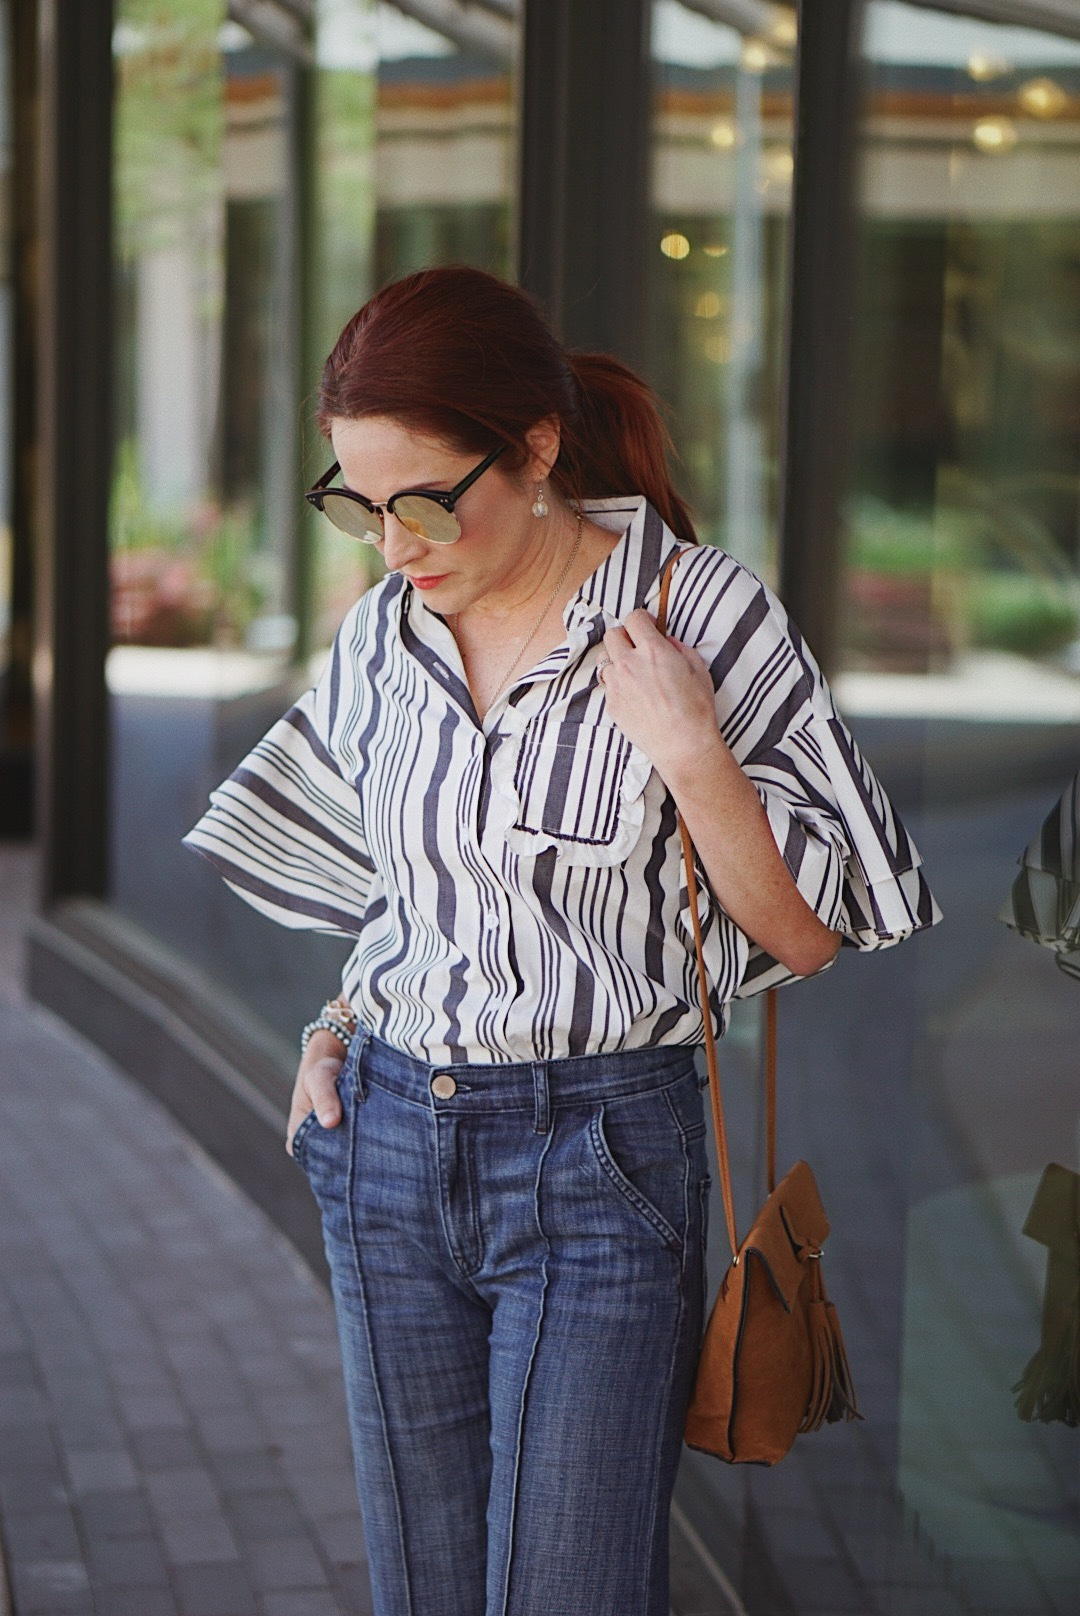 spring outfit ideas, casual style, wide leg jean outfits, jeans with wide leg flare